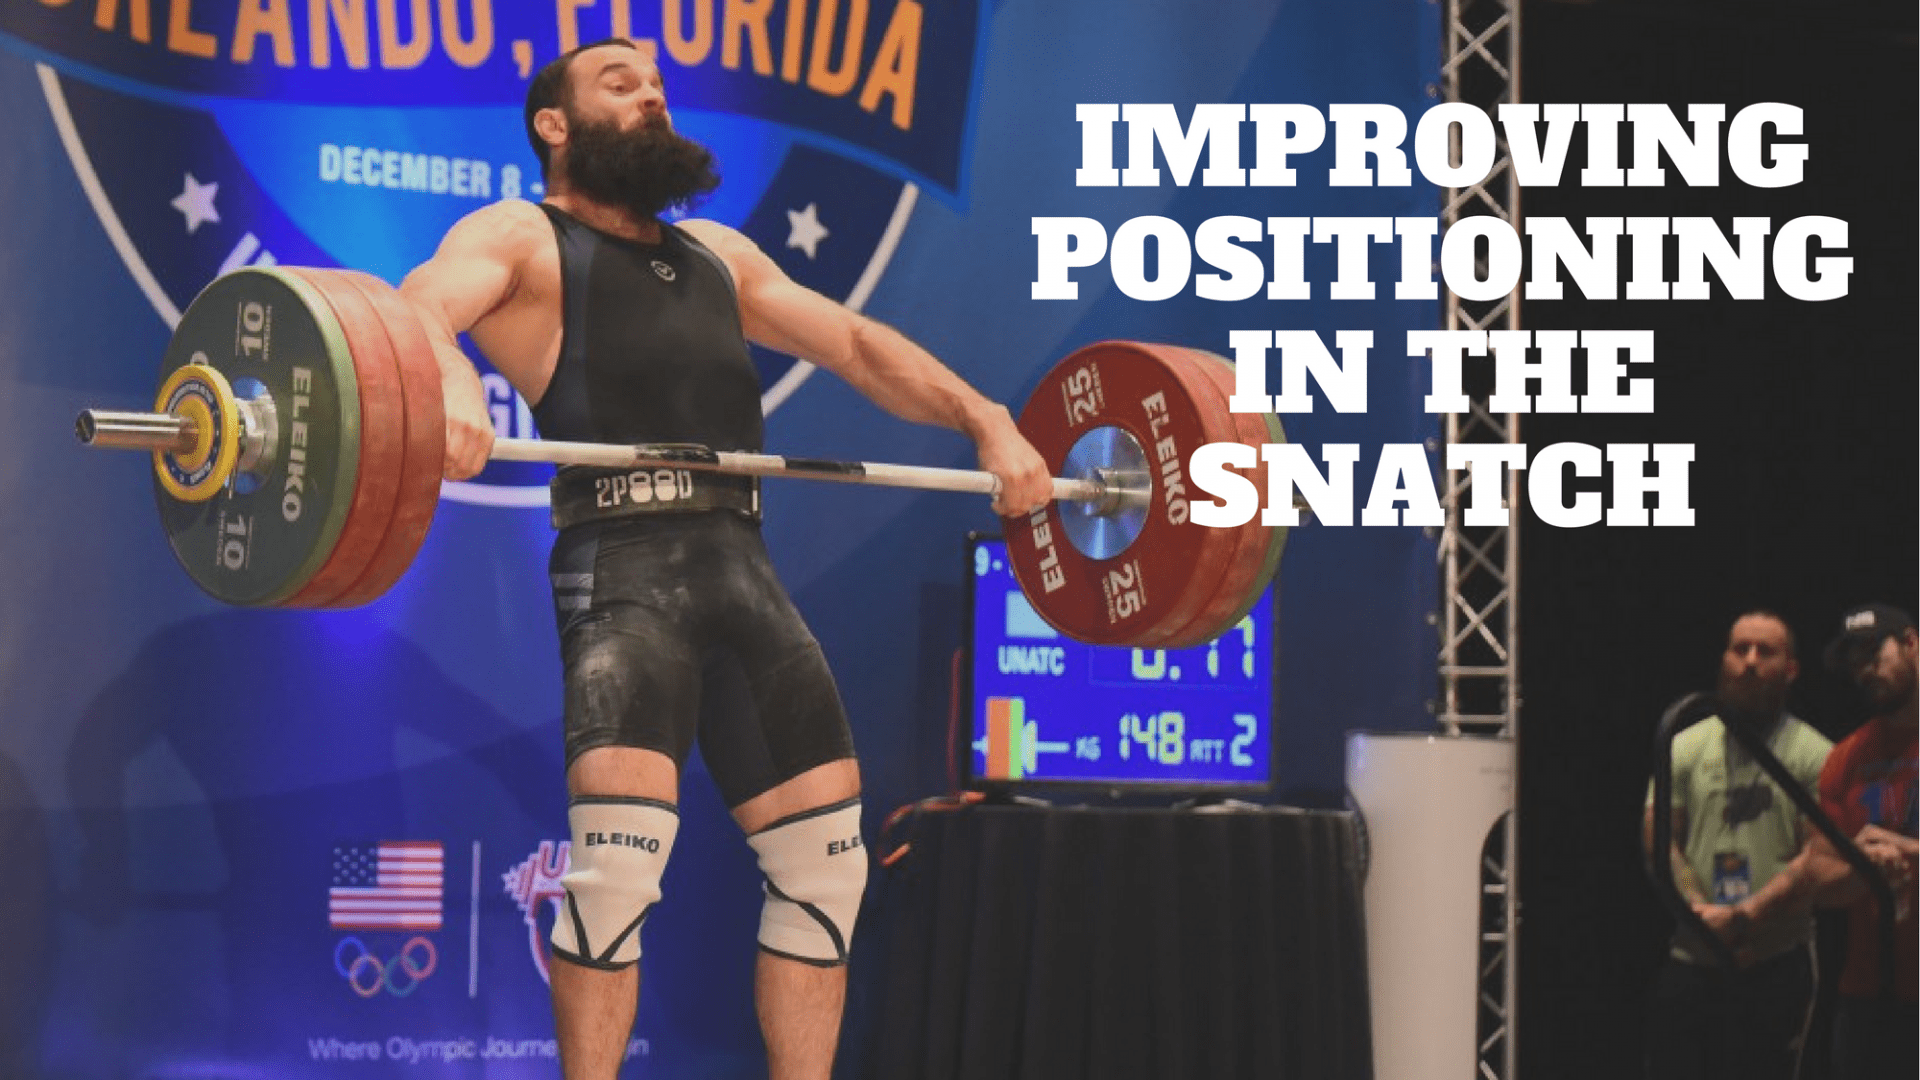 Improving Positioning In The Snatch